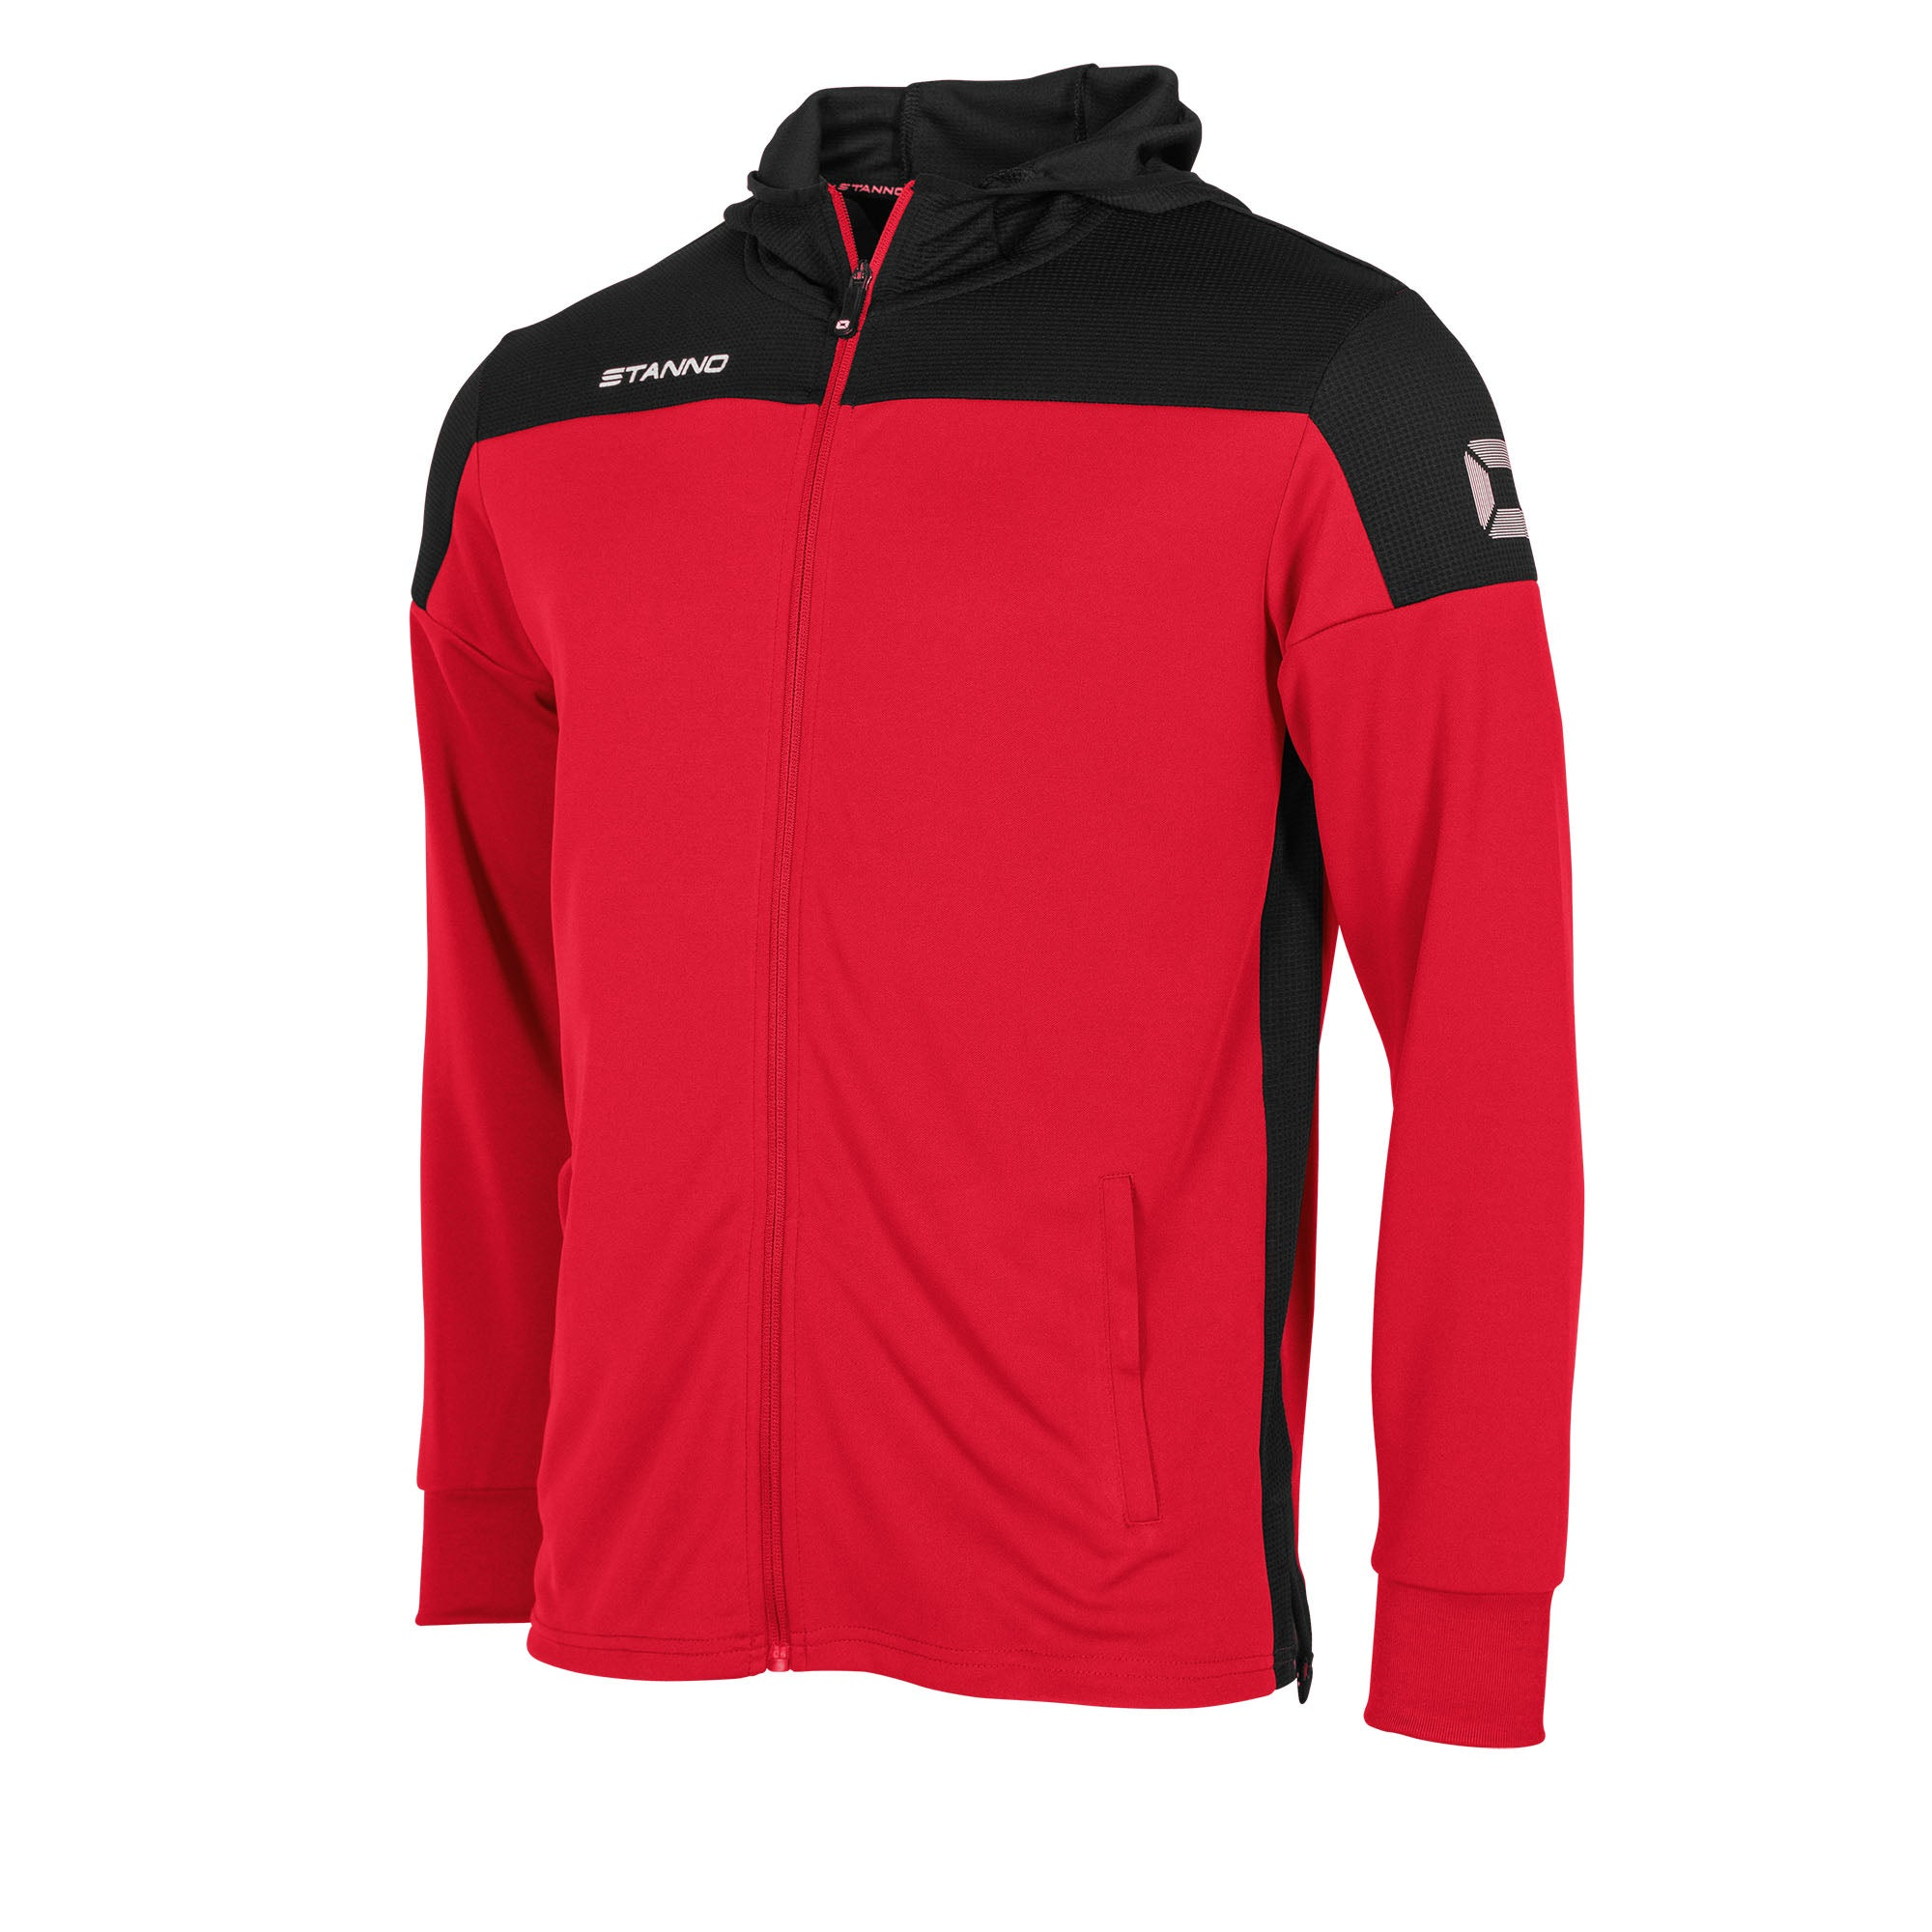 Stanno Pride Hooded Sweat full zip Jacket in red with black contrast hood, side panels and shoulder